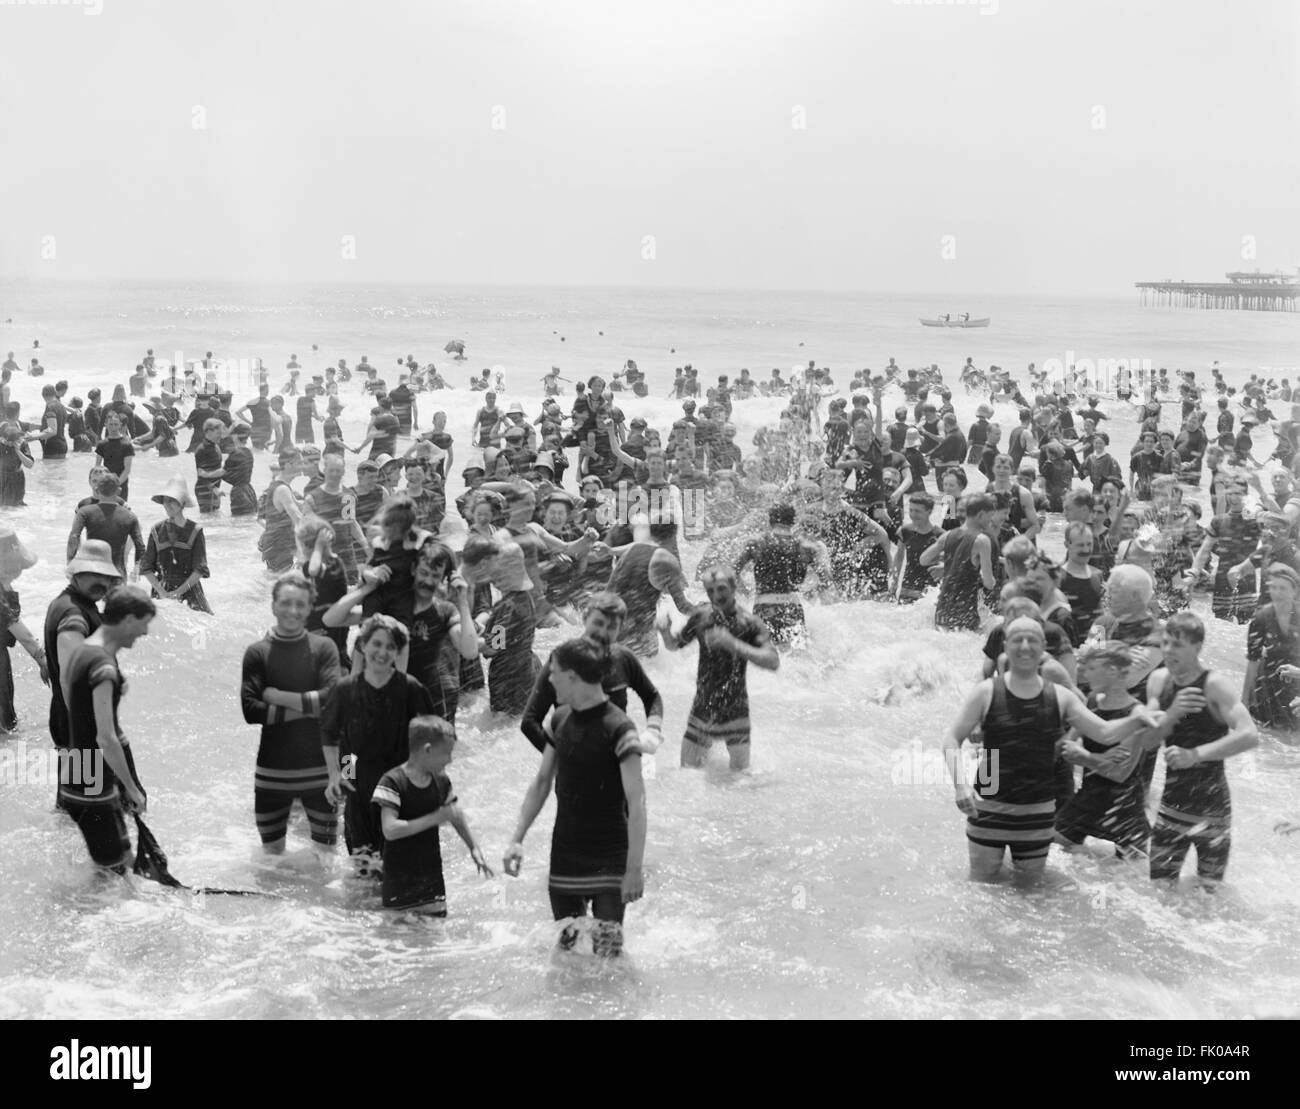 Crowd Enjoying Beach, Atlantic City, New Jersey, USA, circa 1905 - Stock Image